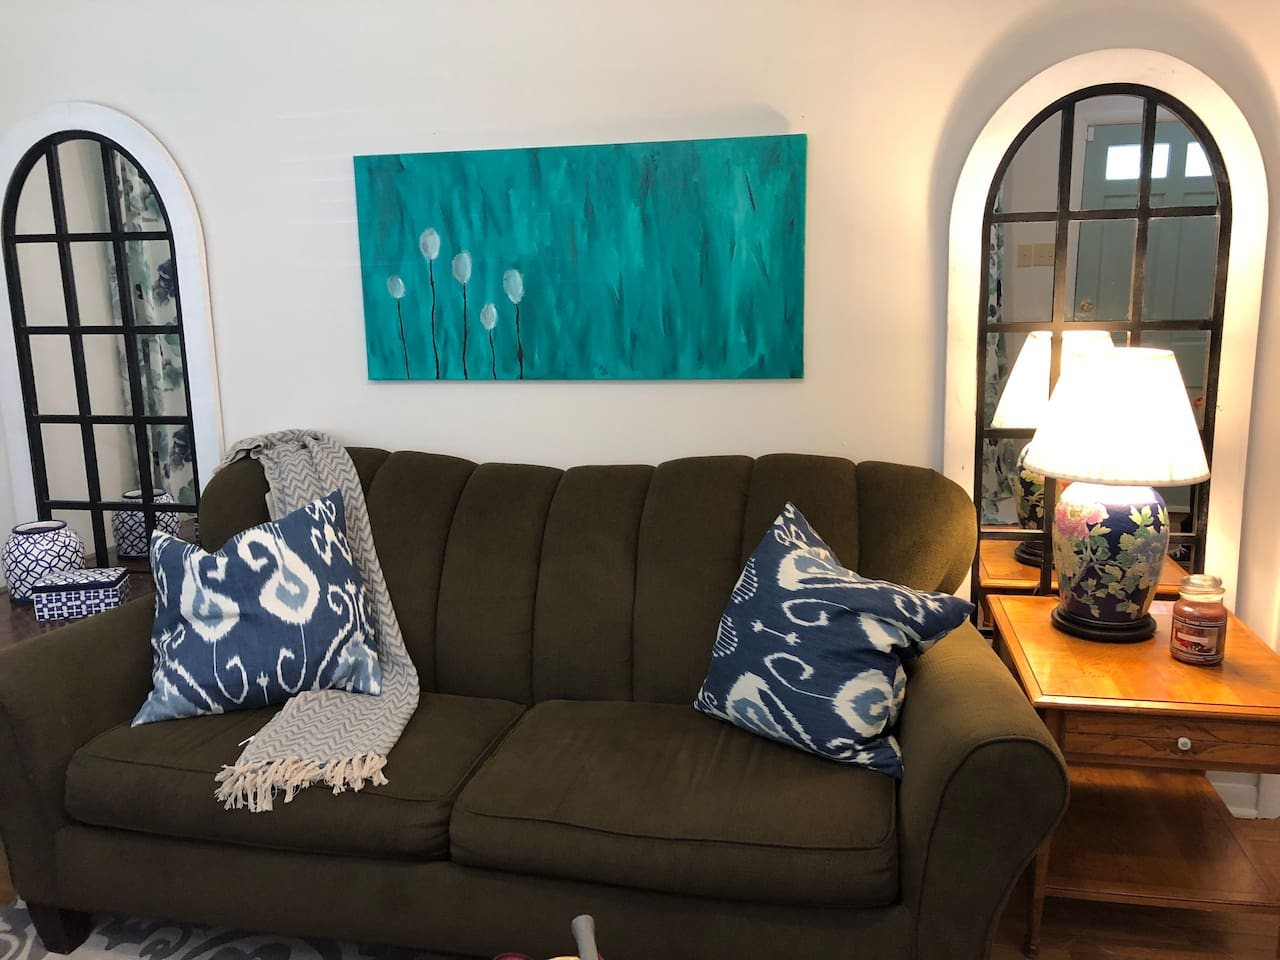 Sit back and watch cable tv or Netflix on the flat screen tv on the comfy sofa.